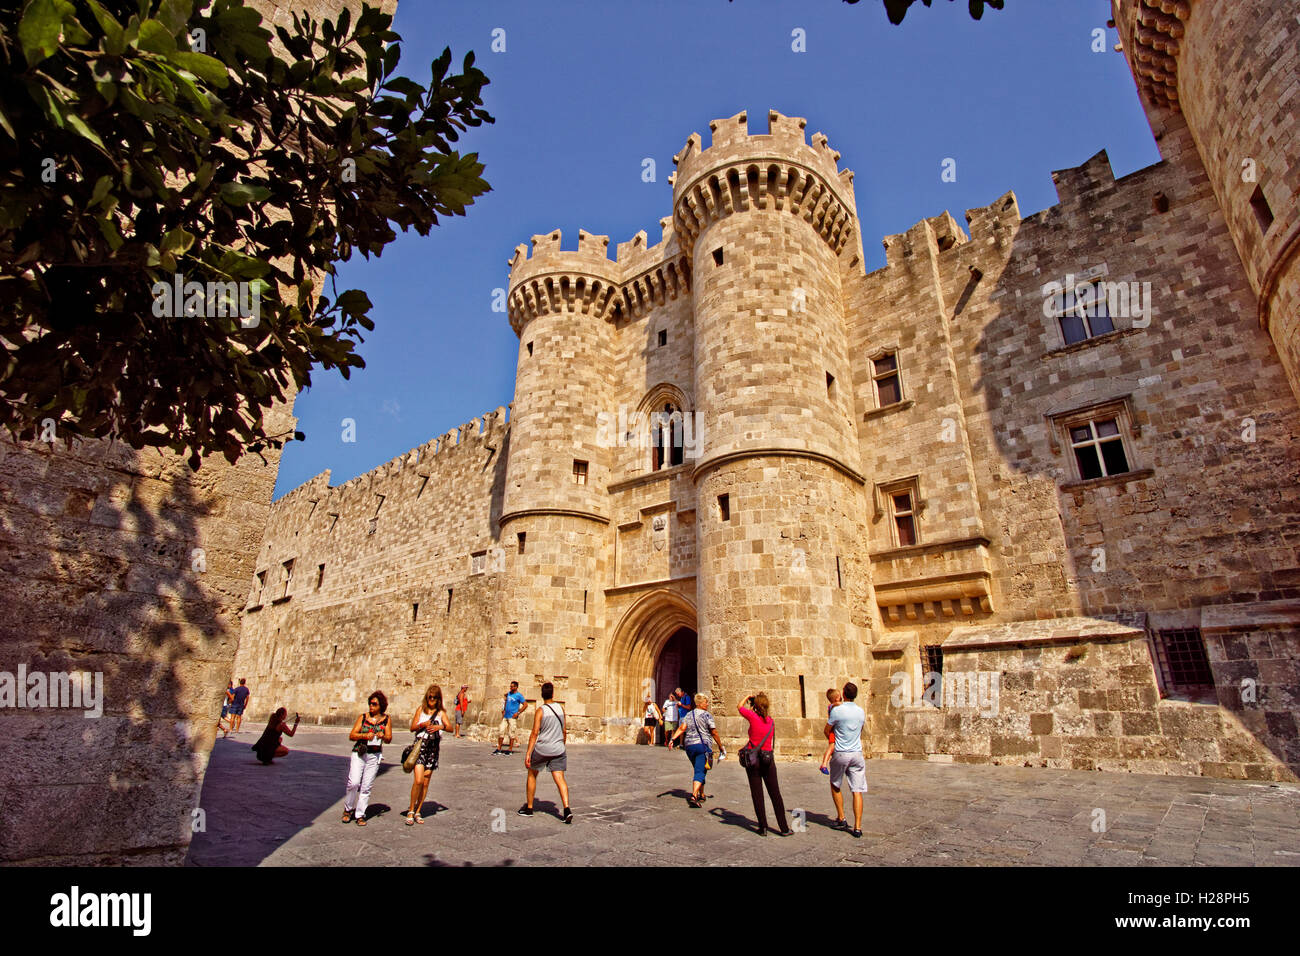 Palace of the Grand Master of Rhodes, Rhodes Island, Dodecanese Islands, Greece. - Stock Image